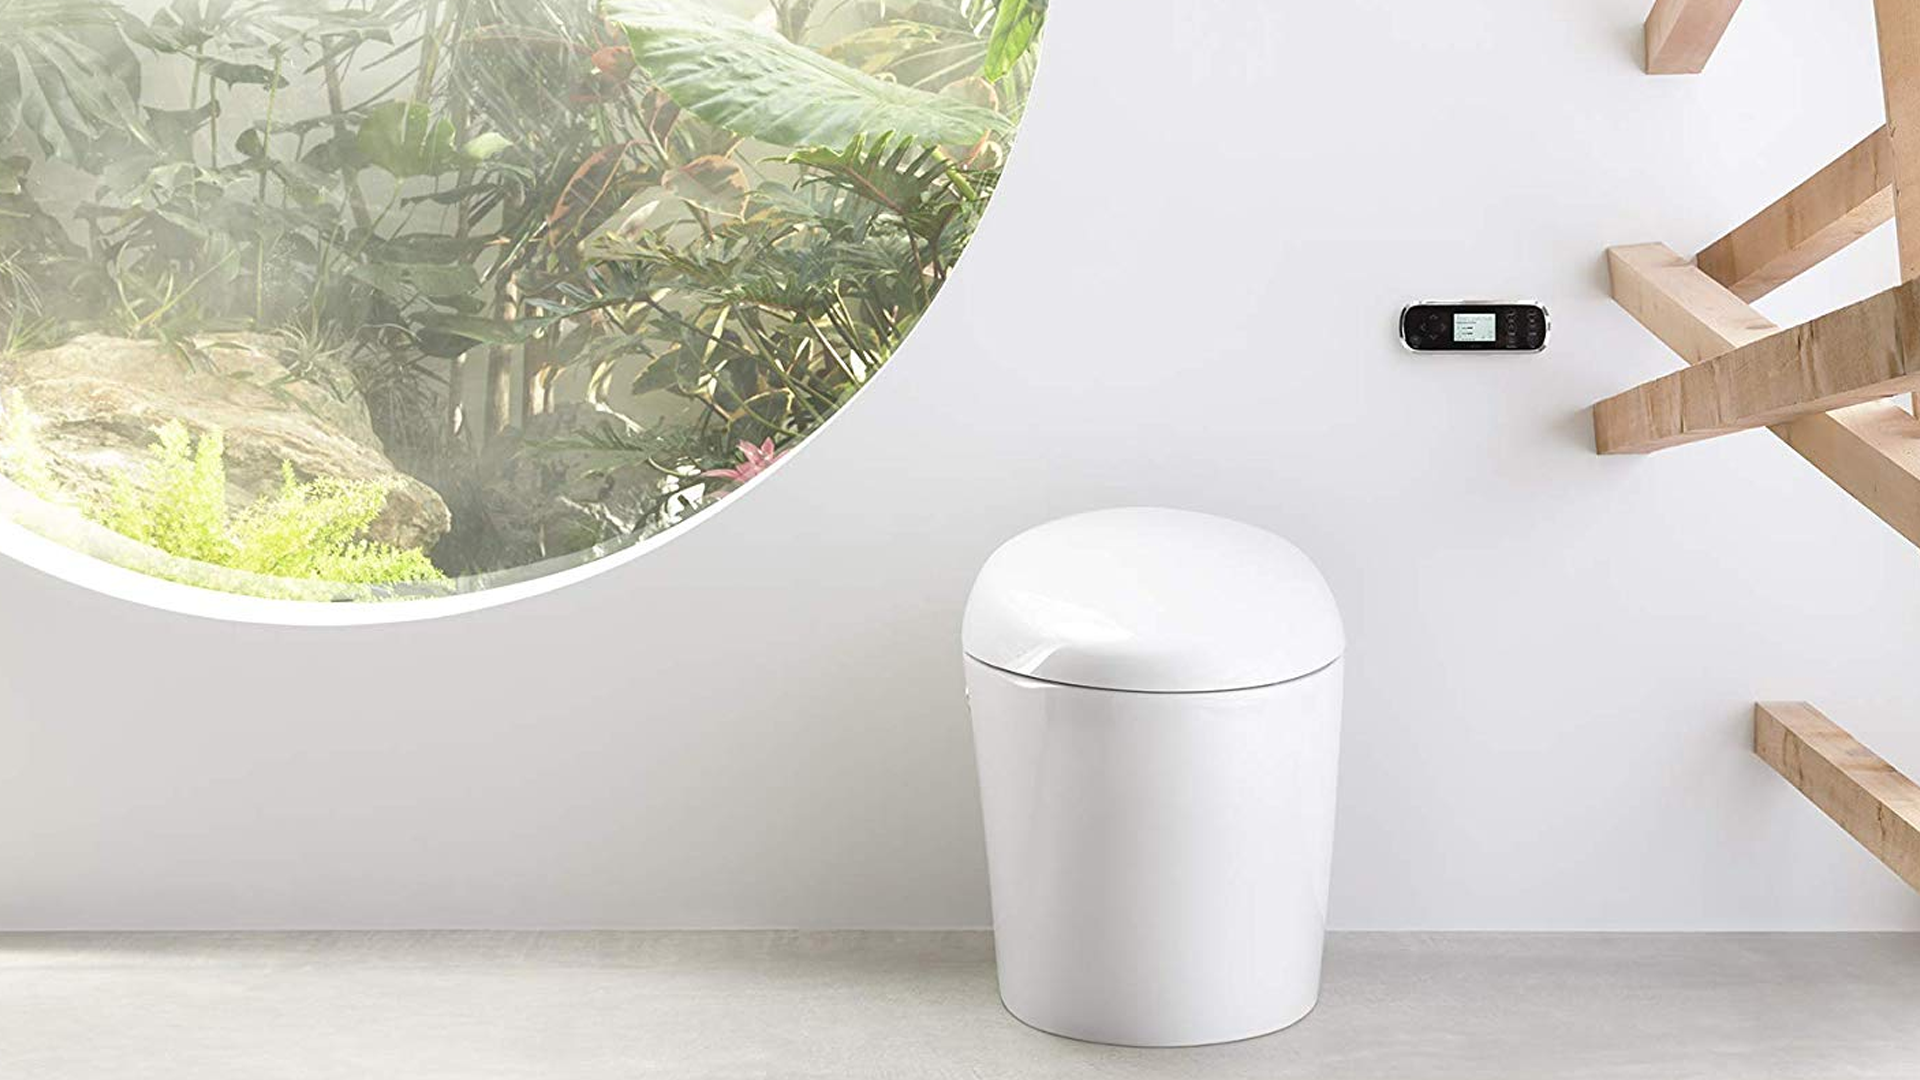 The Kohler smart toilet.